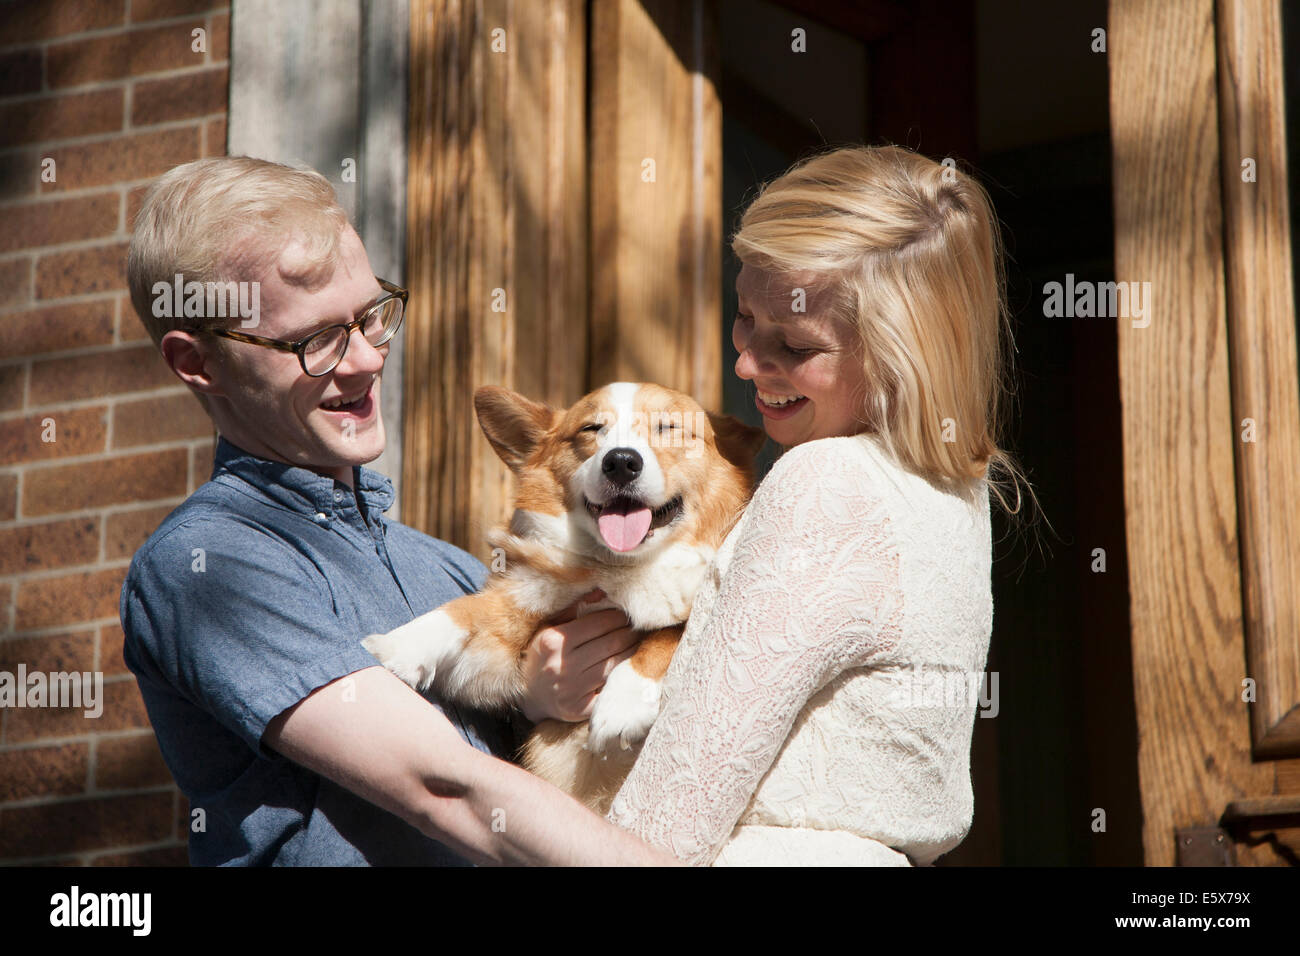 Happy young couple with corgi dog in arms outside front door - Stock Image